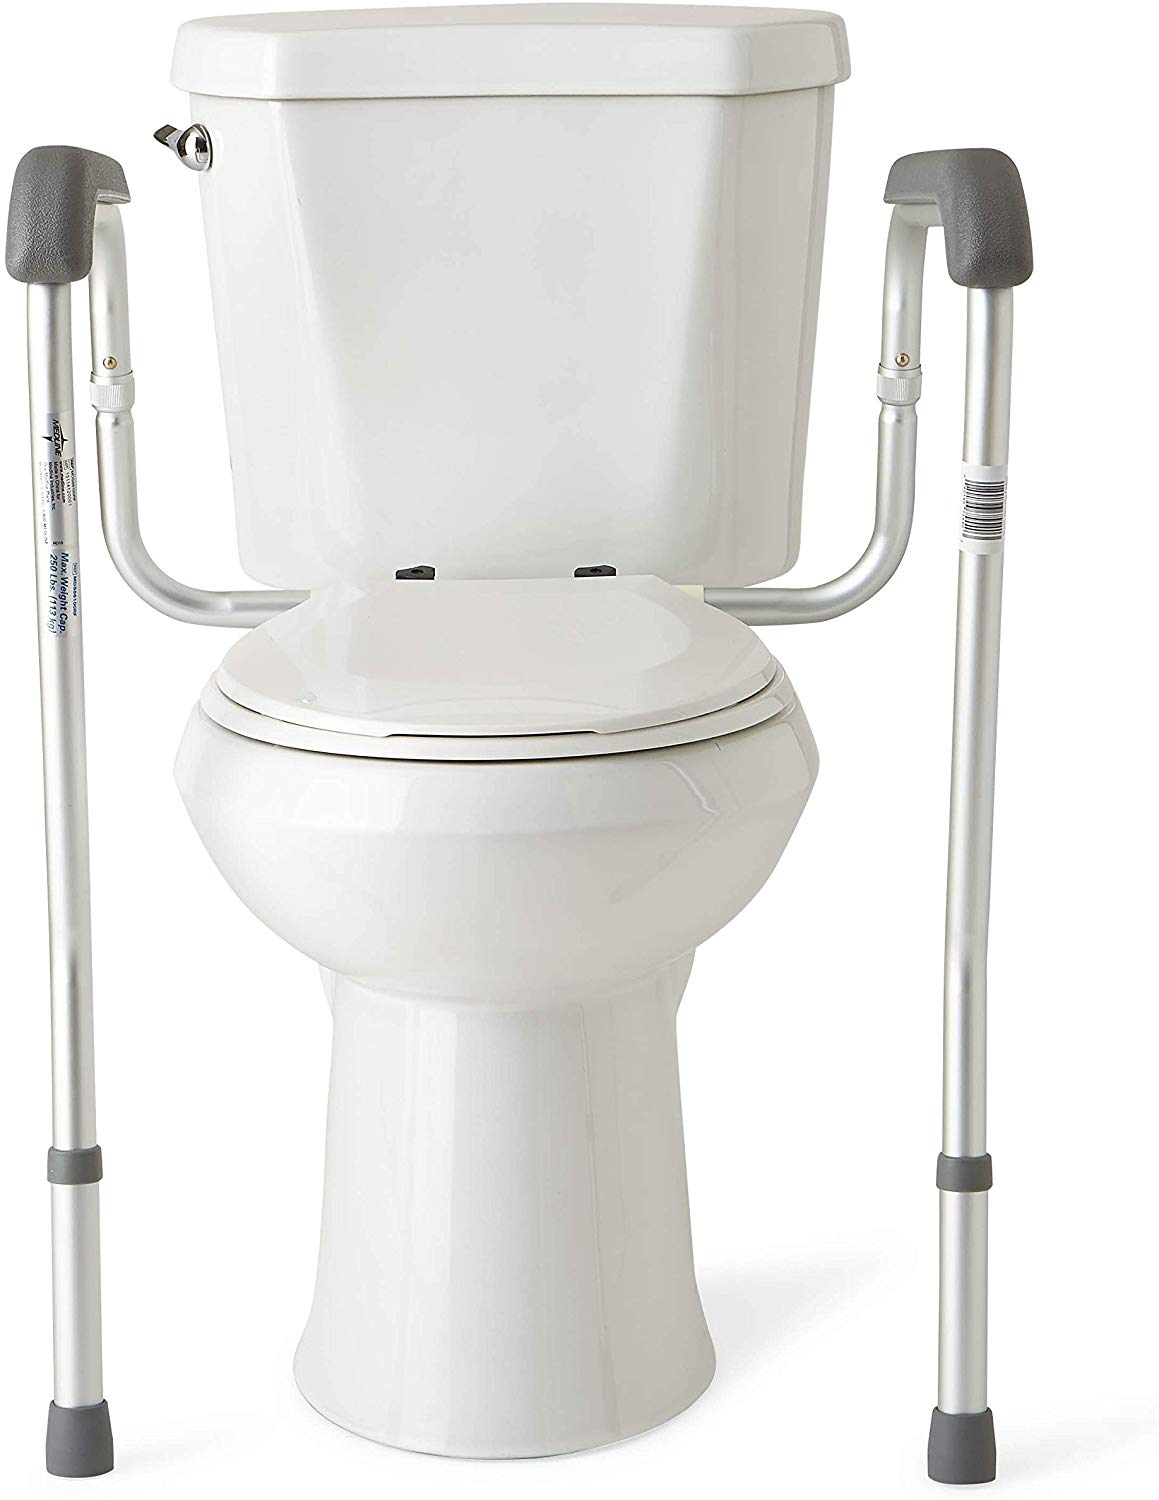 Medline Toilet Safety Rails, Height Adjustable Legs